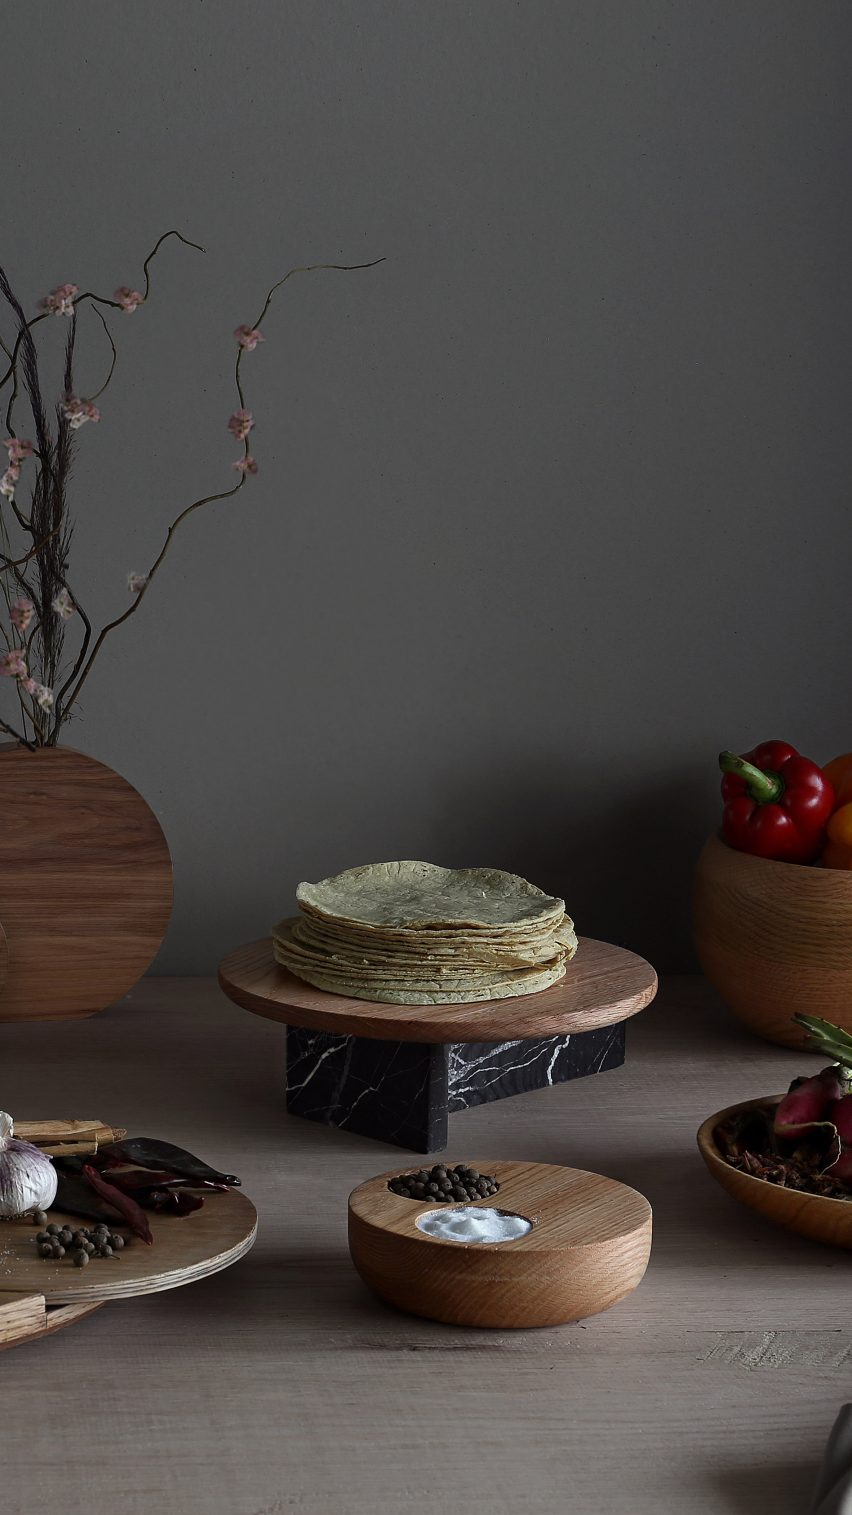 The marble serving plates made by Escalona's students contrast with other wooden objects